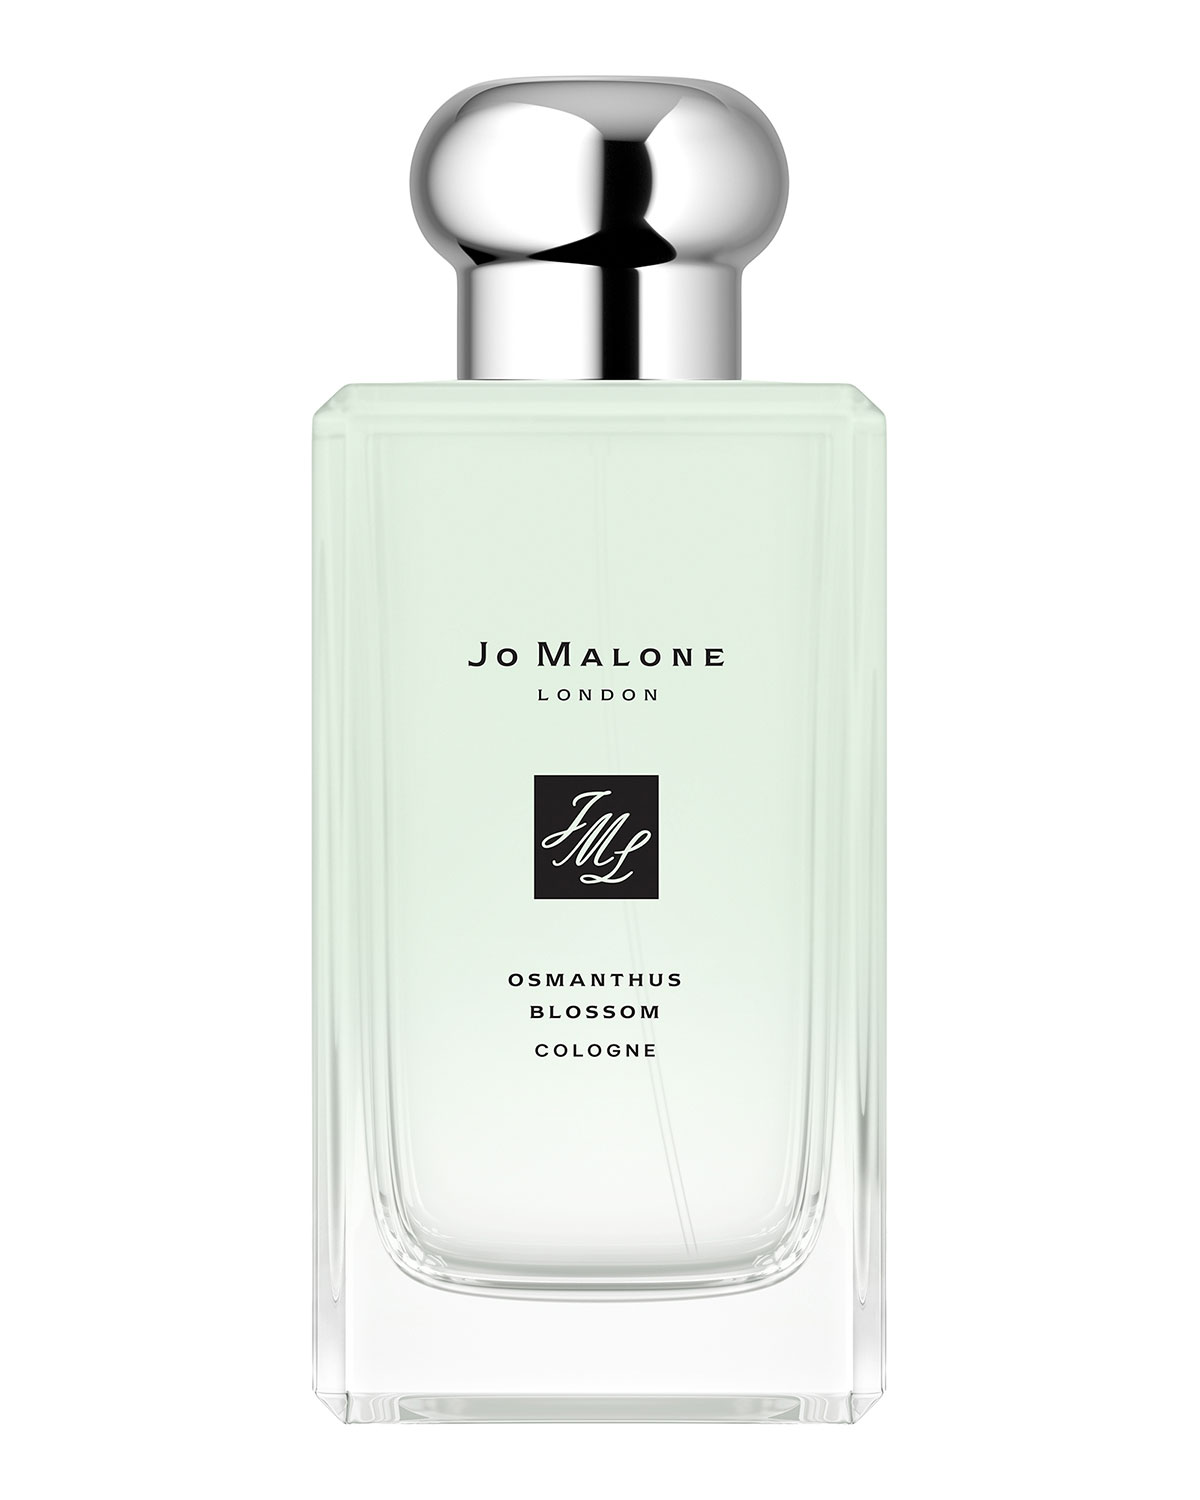 Jo Malone London 3.4fl. oz. Osmanthus Blossom Cologne